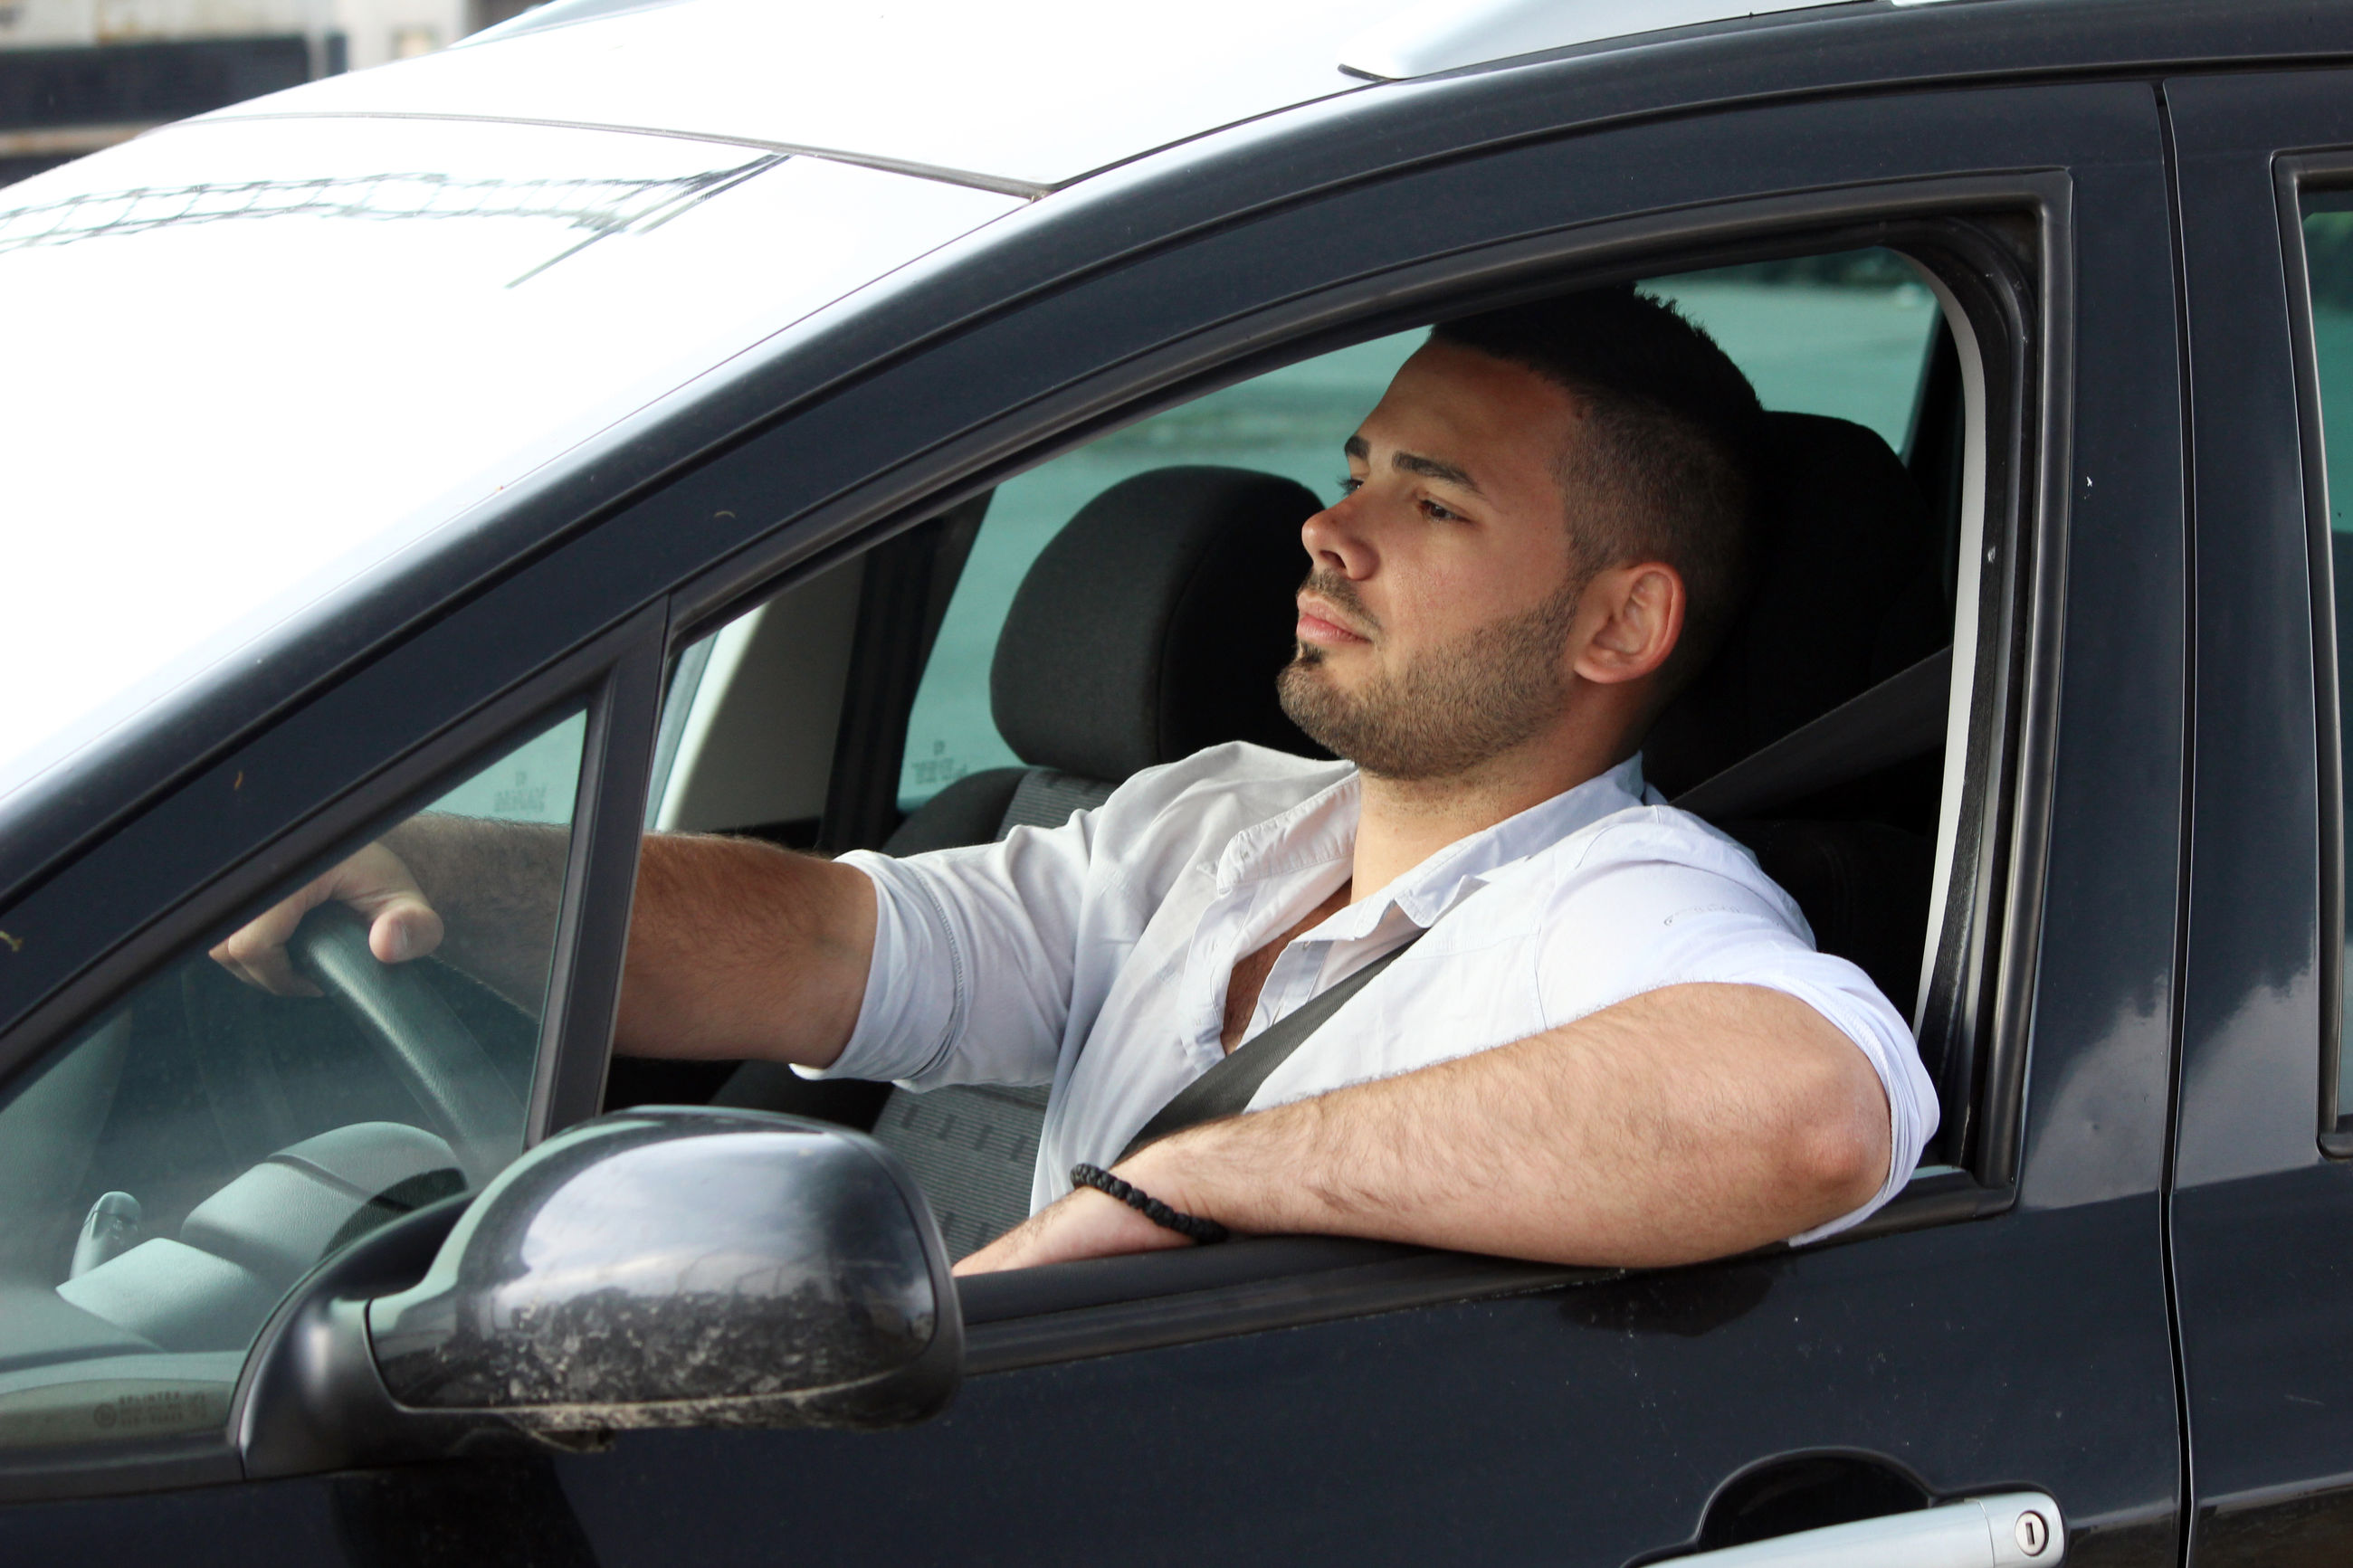 YOUNG MAN LOOKING AT CAMERA WHILE SITTING IN CAR